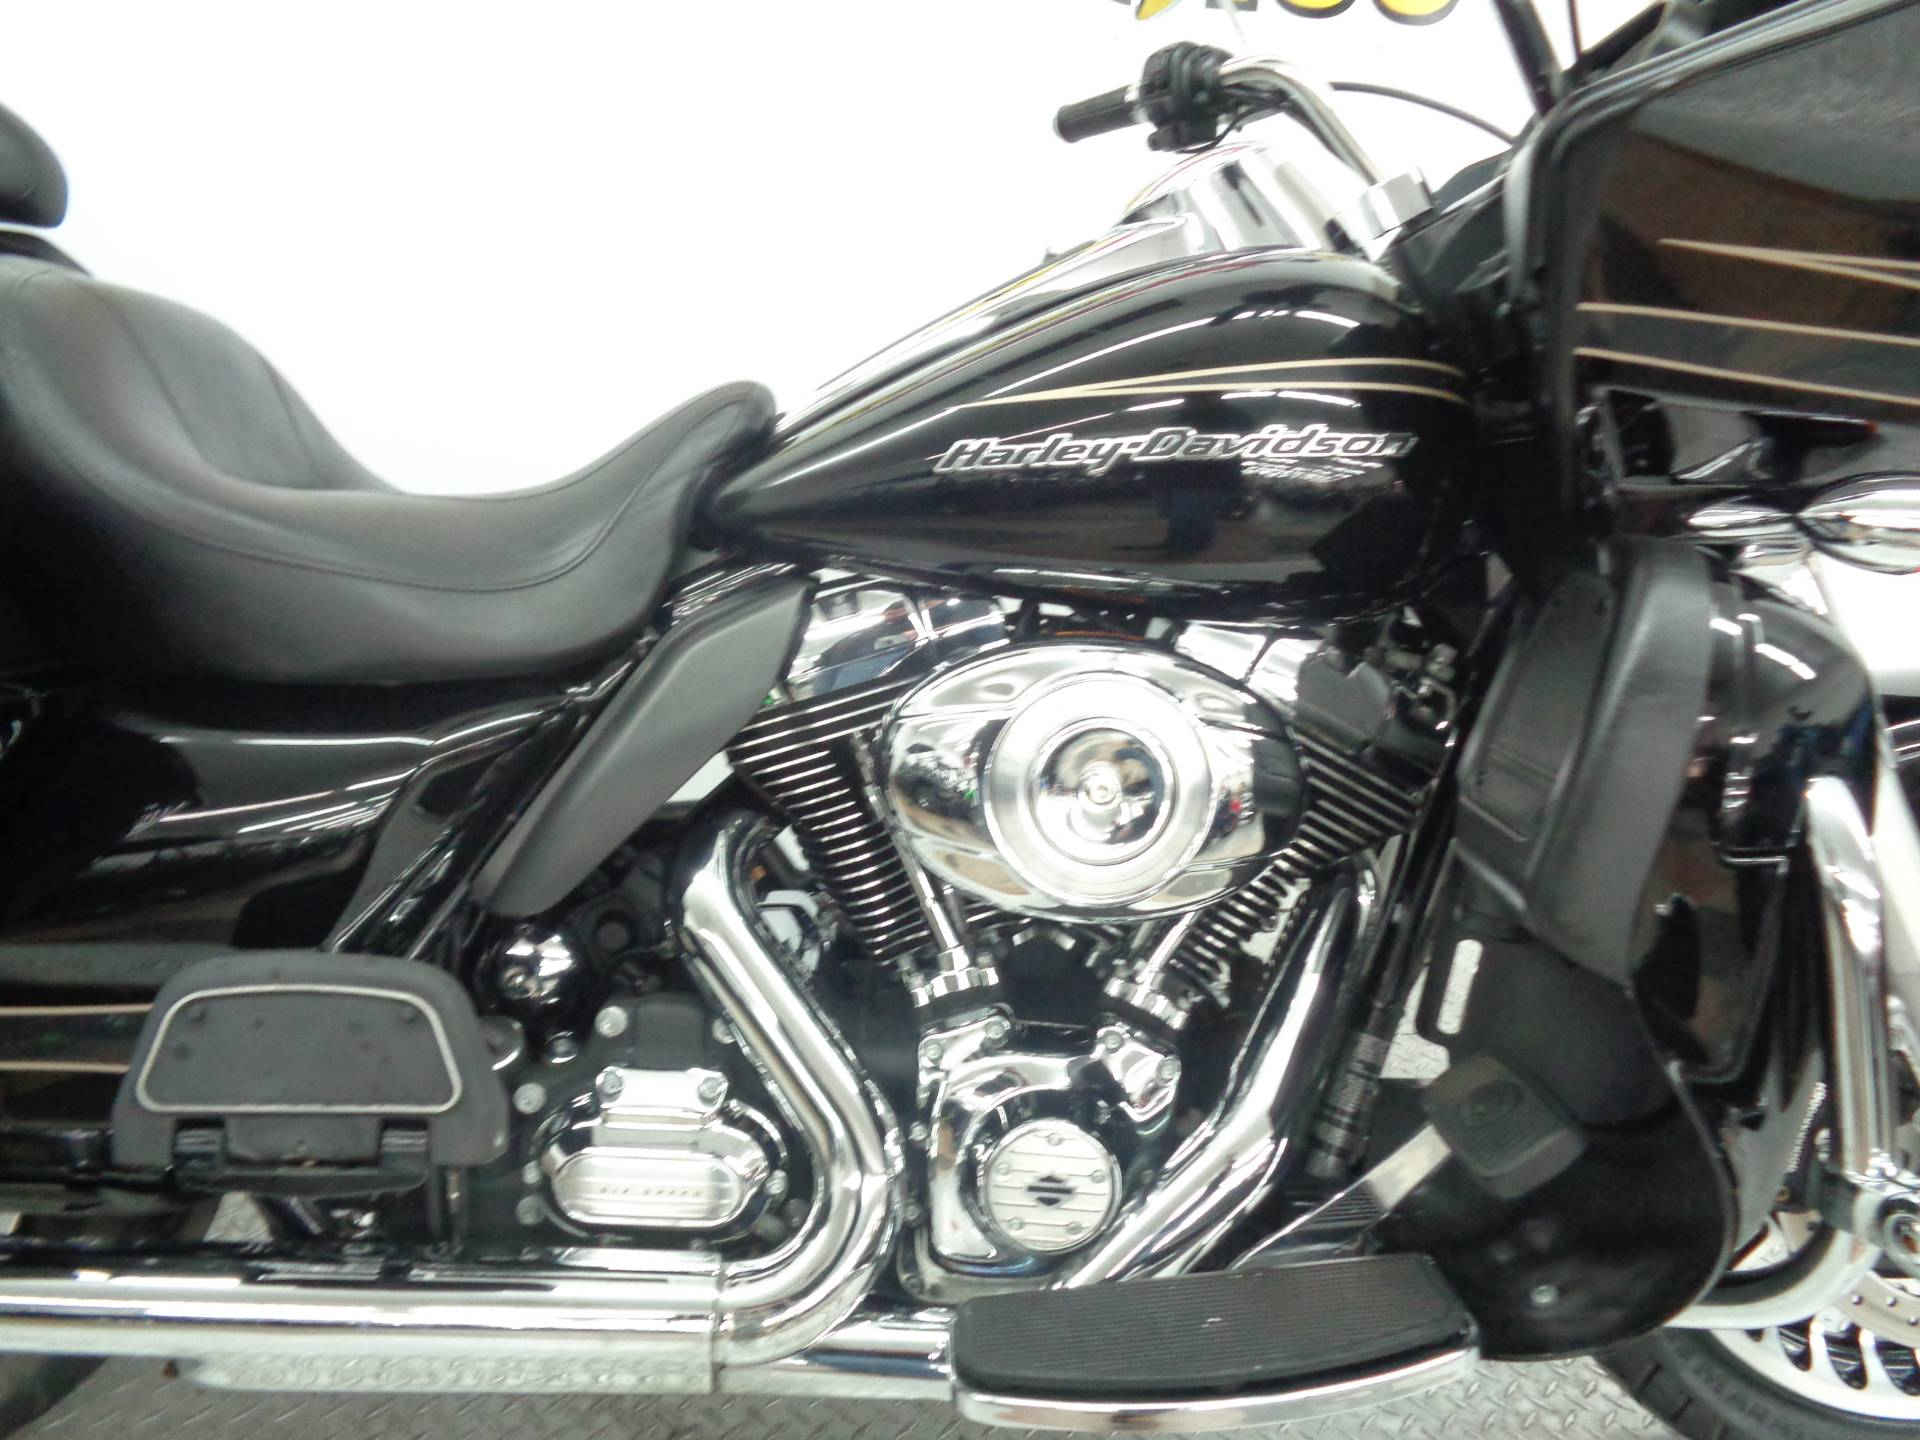 2013 Harley-Davidson Road Glide® Ultra in Tulsa, Oklahoma - Photo 14